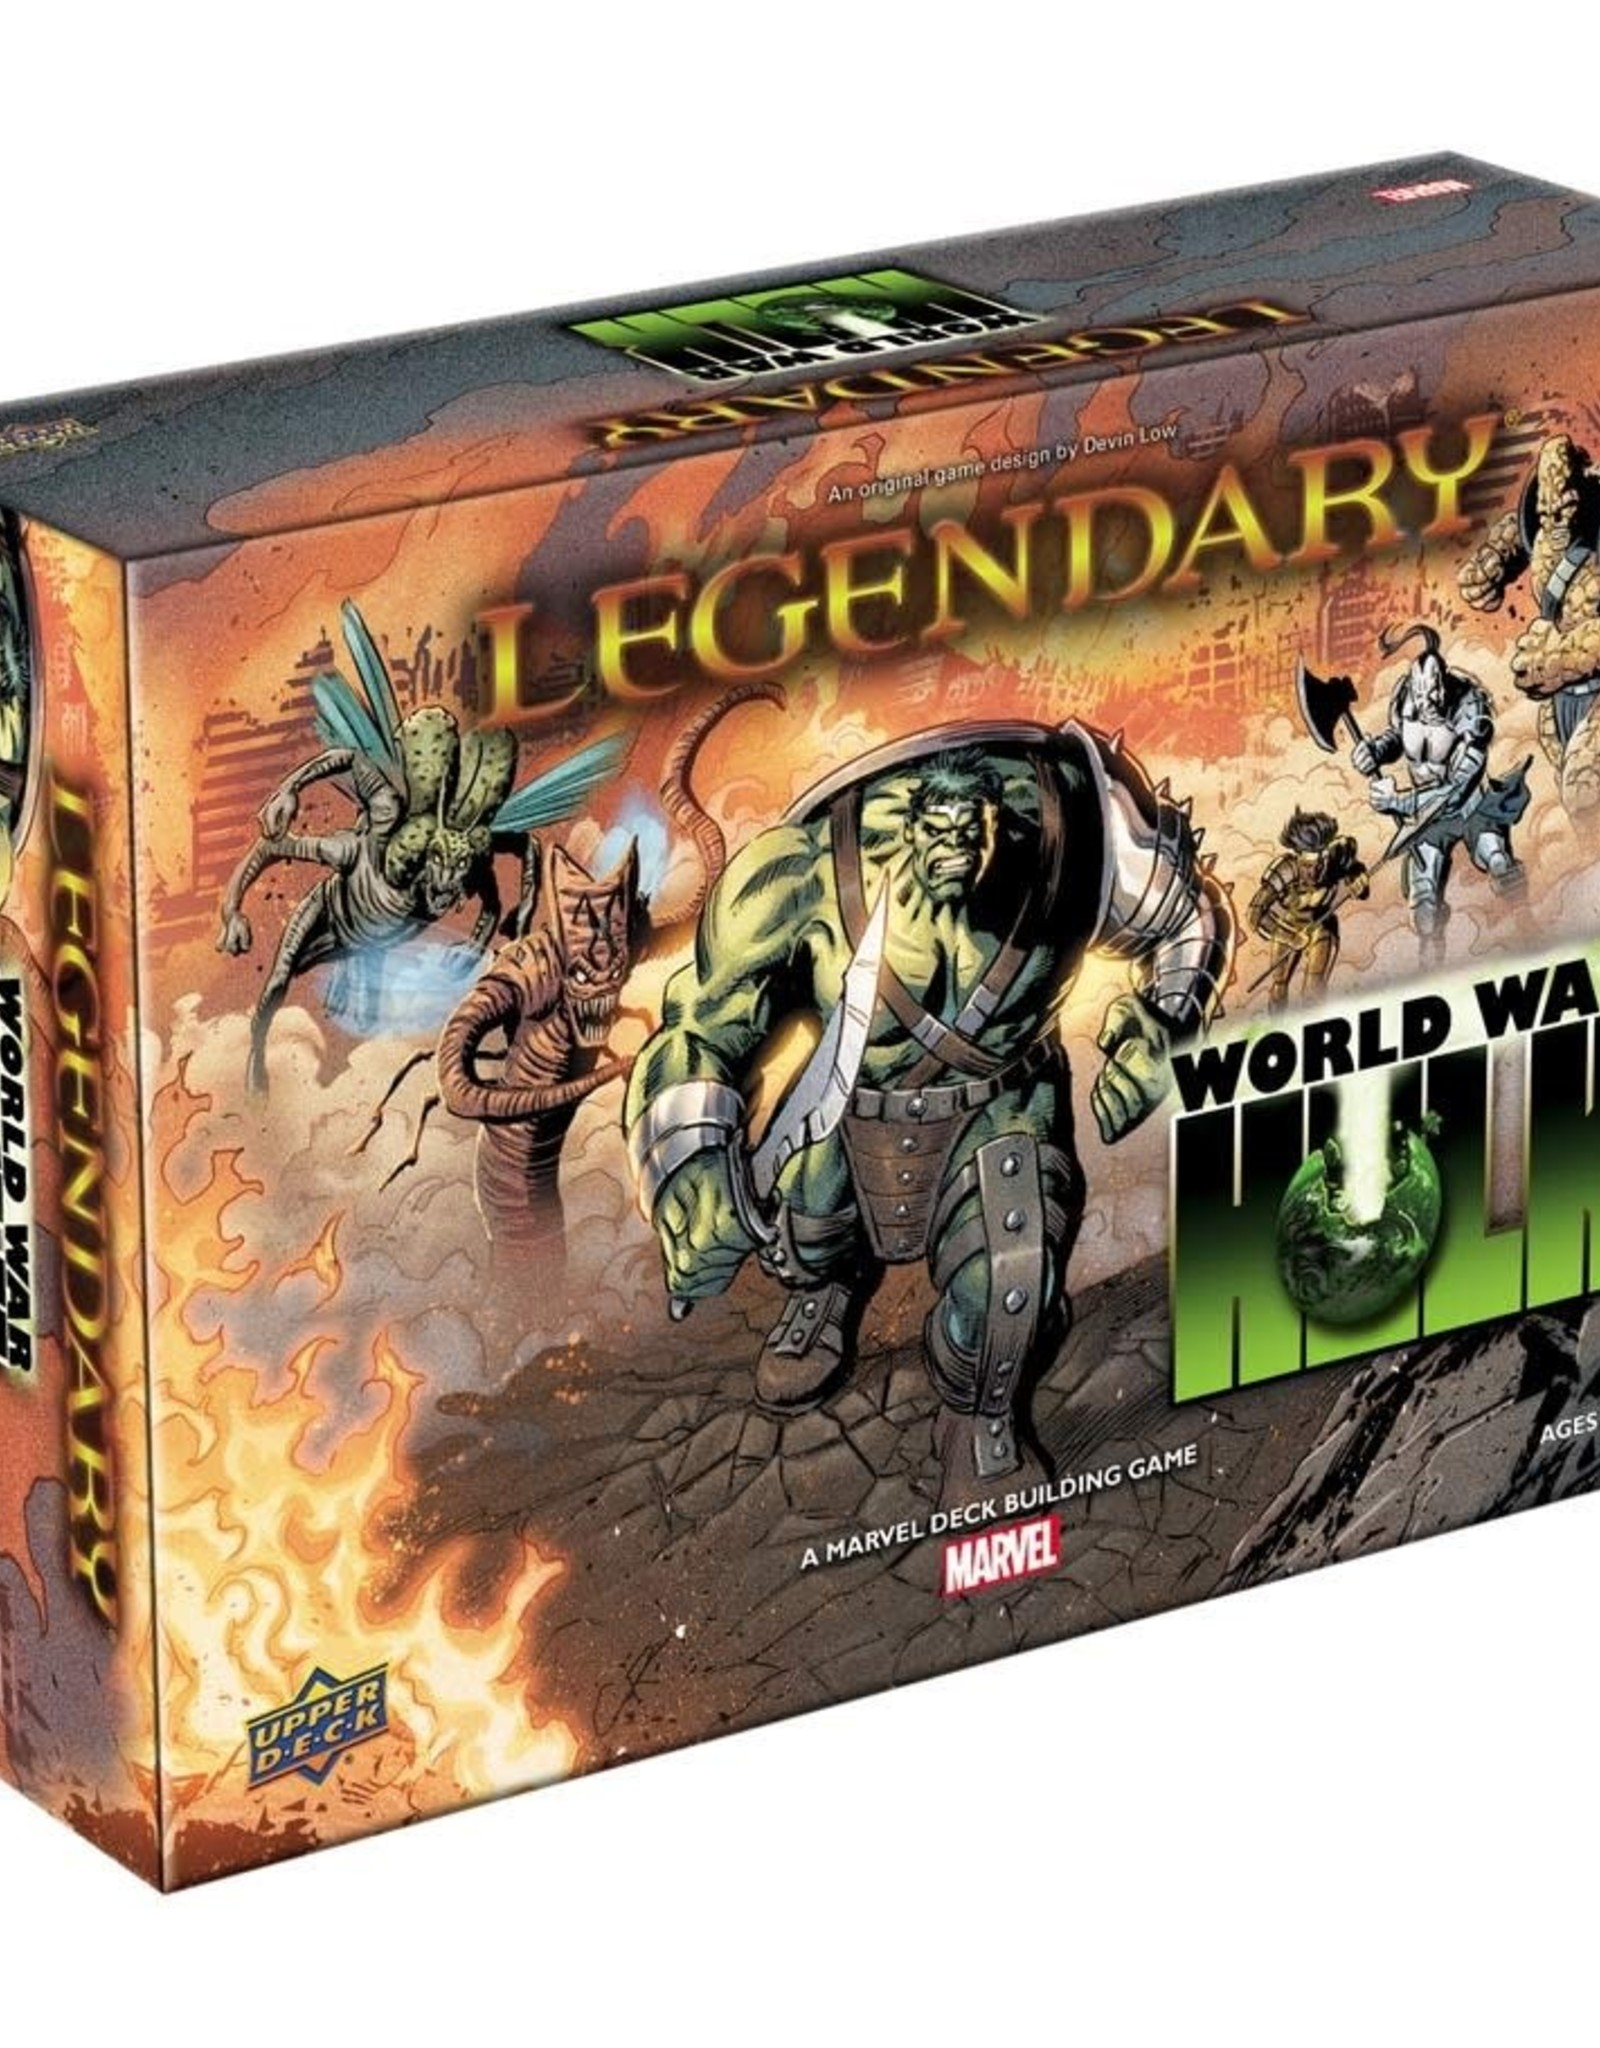 Upper Deck Legendary DBG World War Hulk Expansion